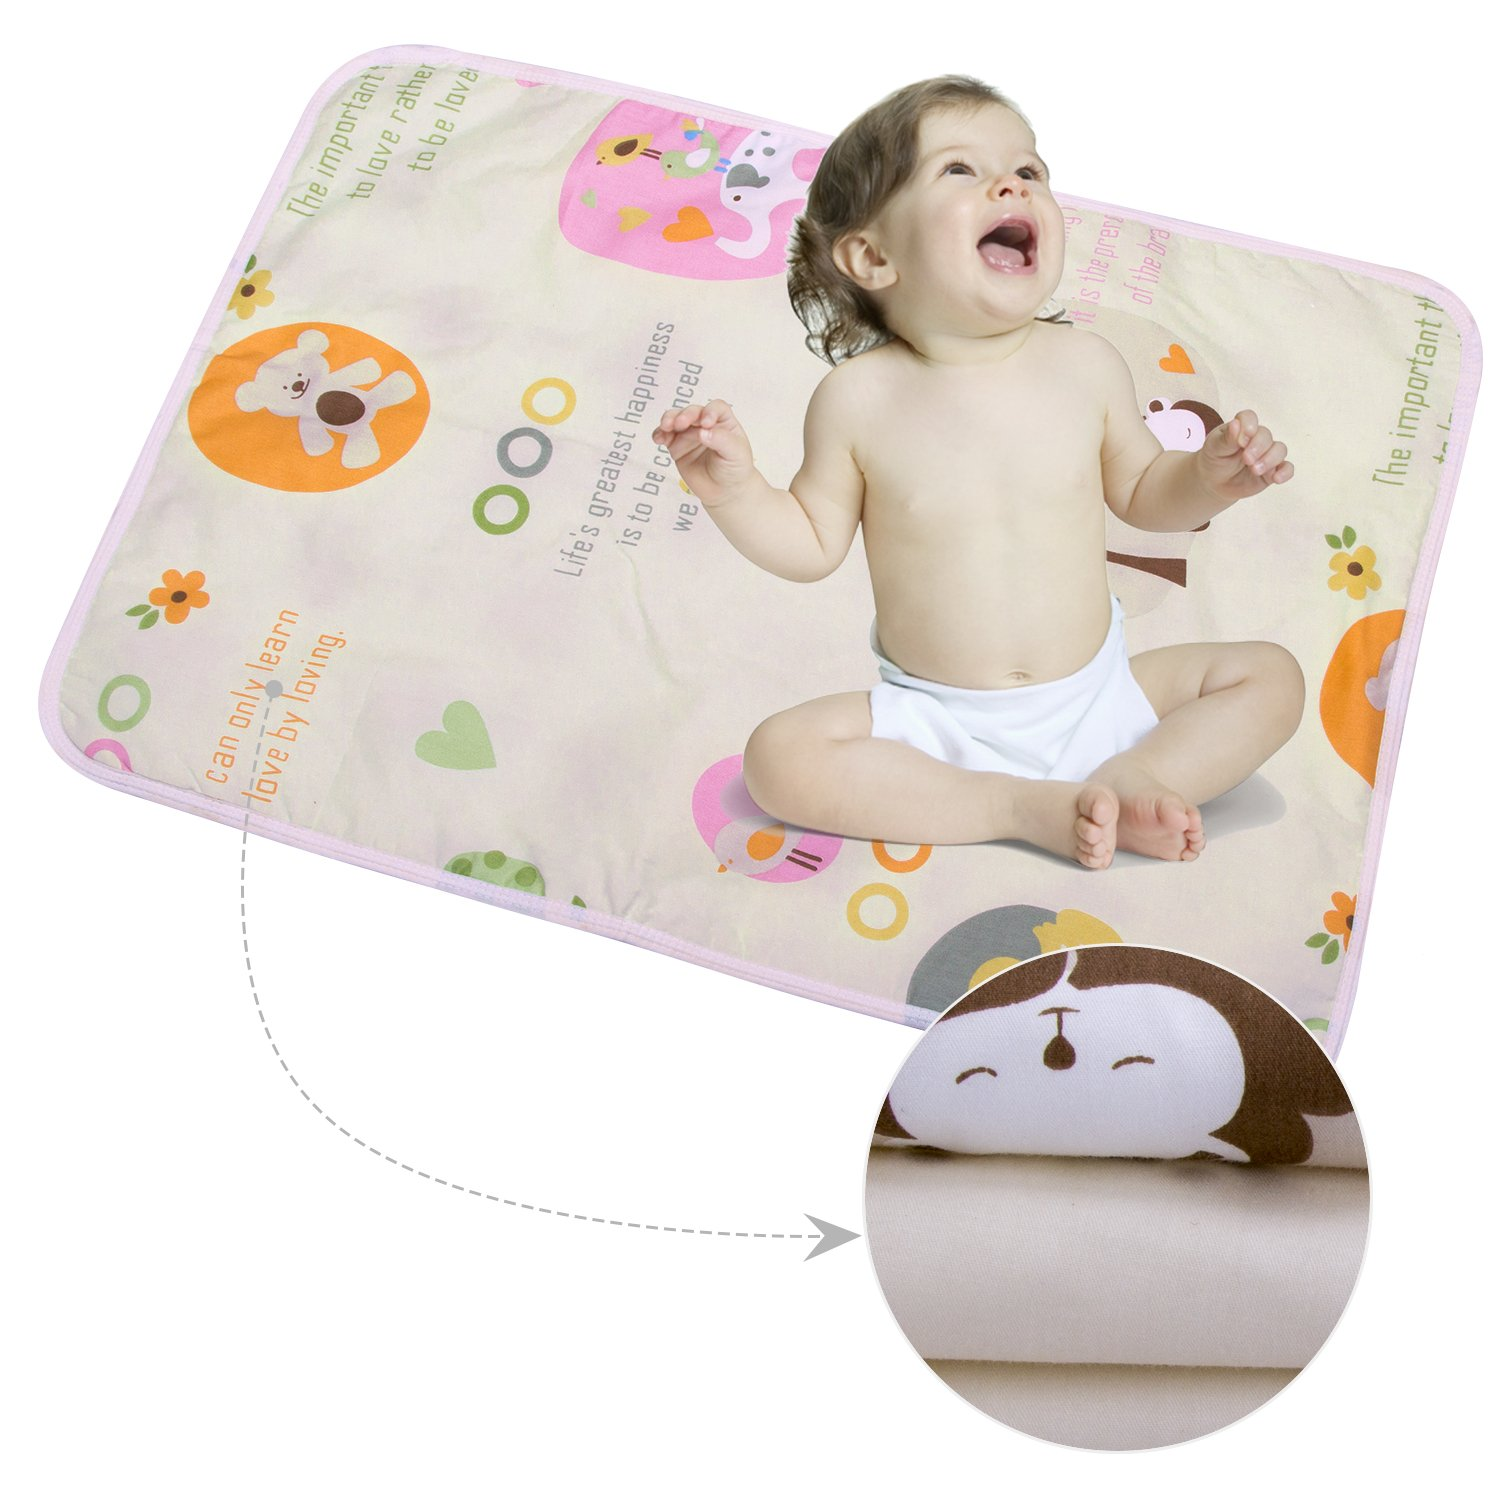 3PCS Infant Waterproof Urine Mat Cover - Breathable Changing Pad Protector for Baby Boys Girls (Champagne Park, L - 23.62 x 29.53 Inch (3 Piece)) anjerry